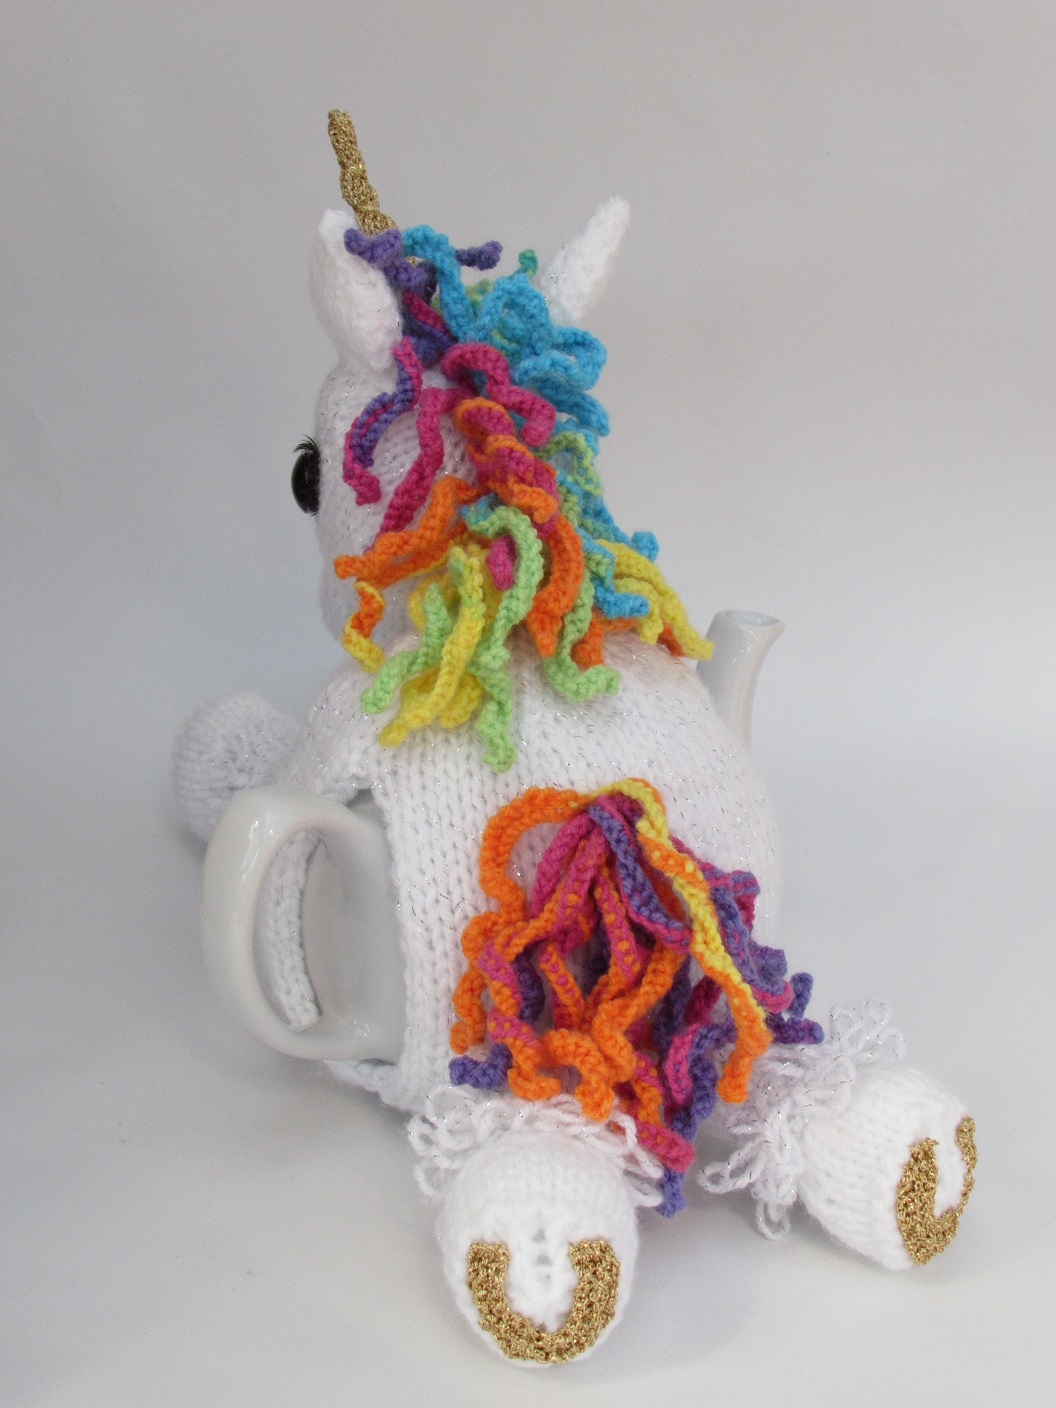 Rainbow Unicorn Knitting Pattern : Unicorn tea cosy knitting pattern